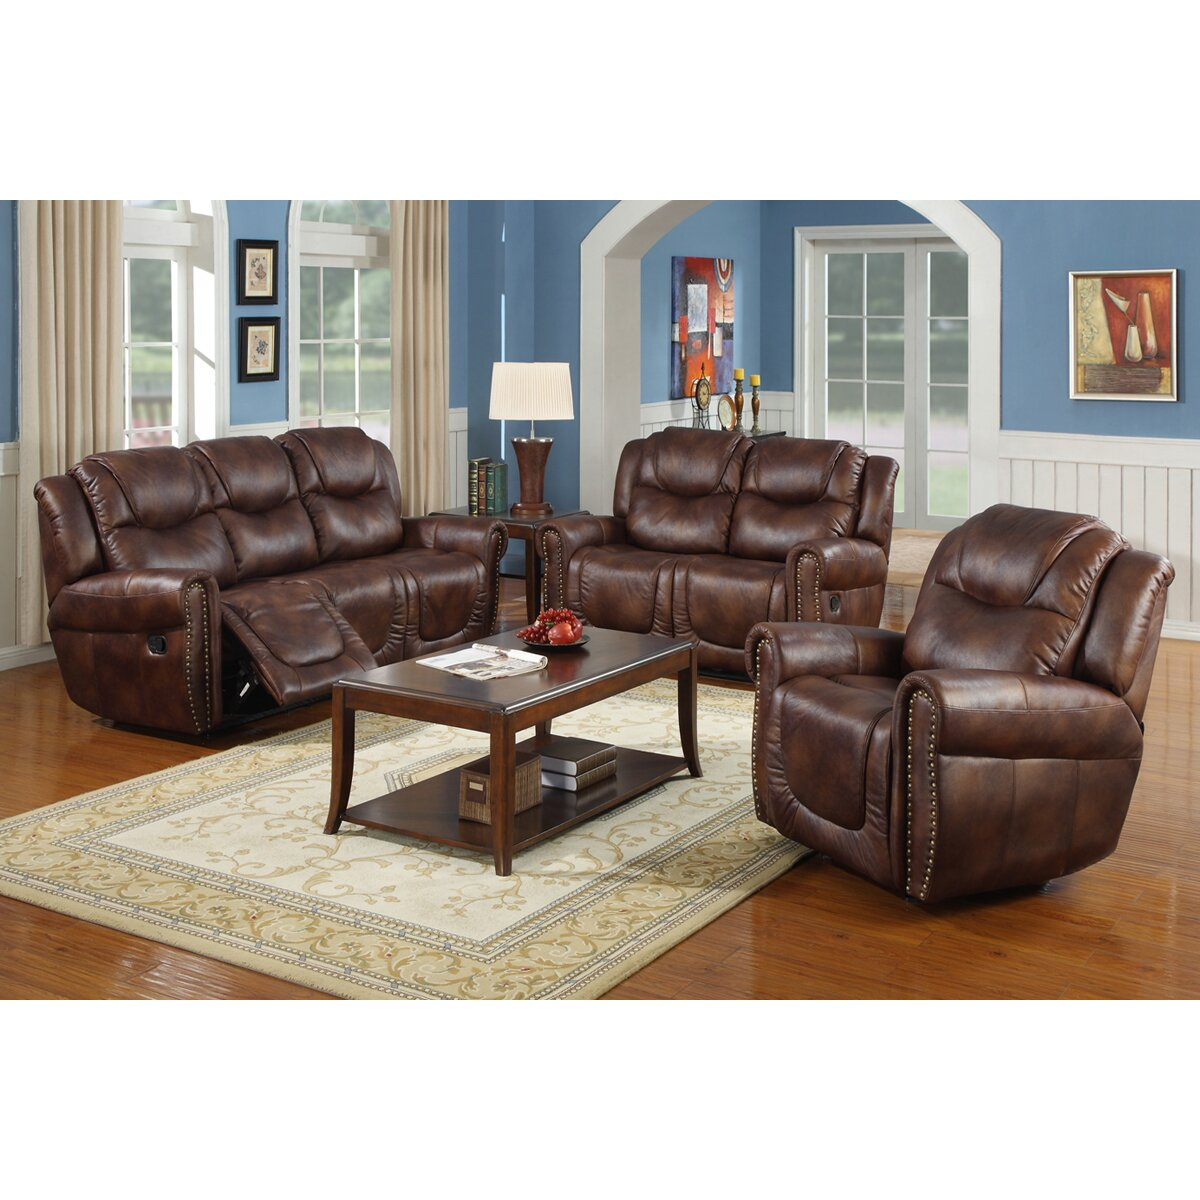 Toledo 3 piece bonded leather reclining living room sofa for Living room 3 piece sets